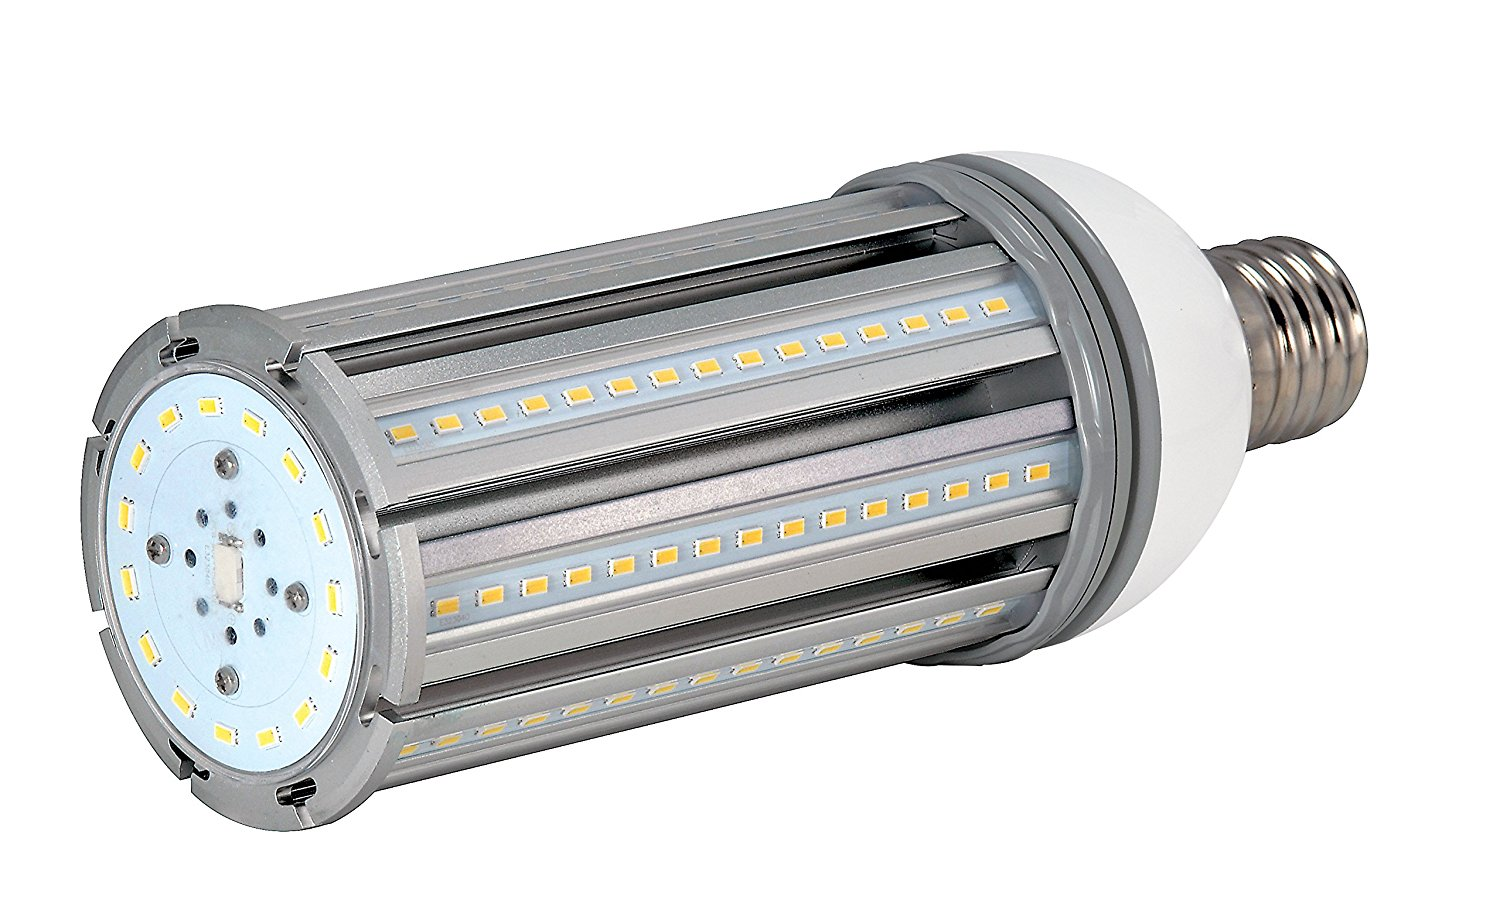 Satco S9674 54W LED HID Replacement 4000K MoGUl Extended Base 100-277V Light Bulb